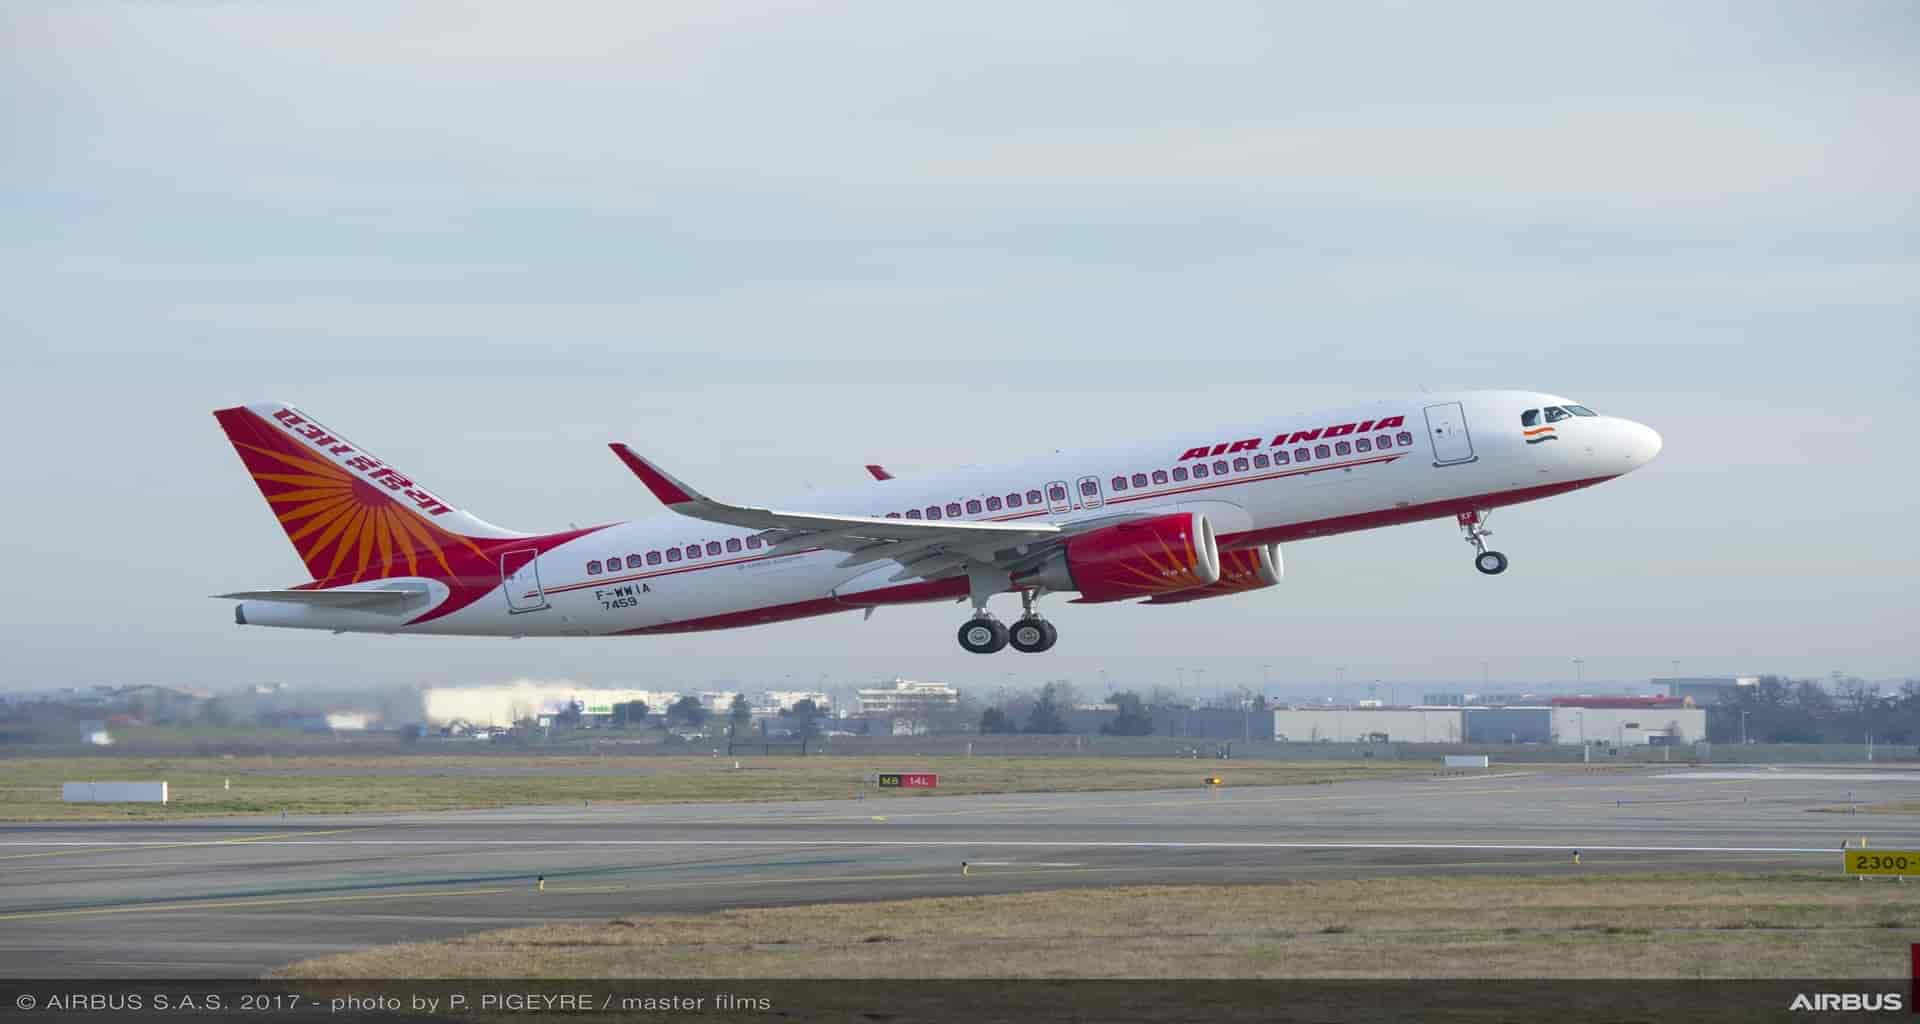 Air India Announced 10 additional flights between India and USA under Vande Bharat Mission